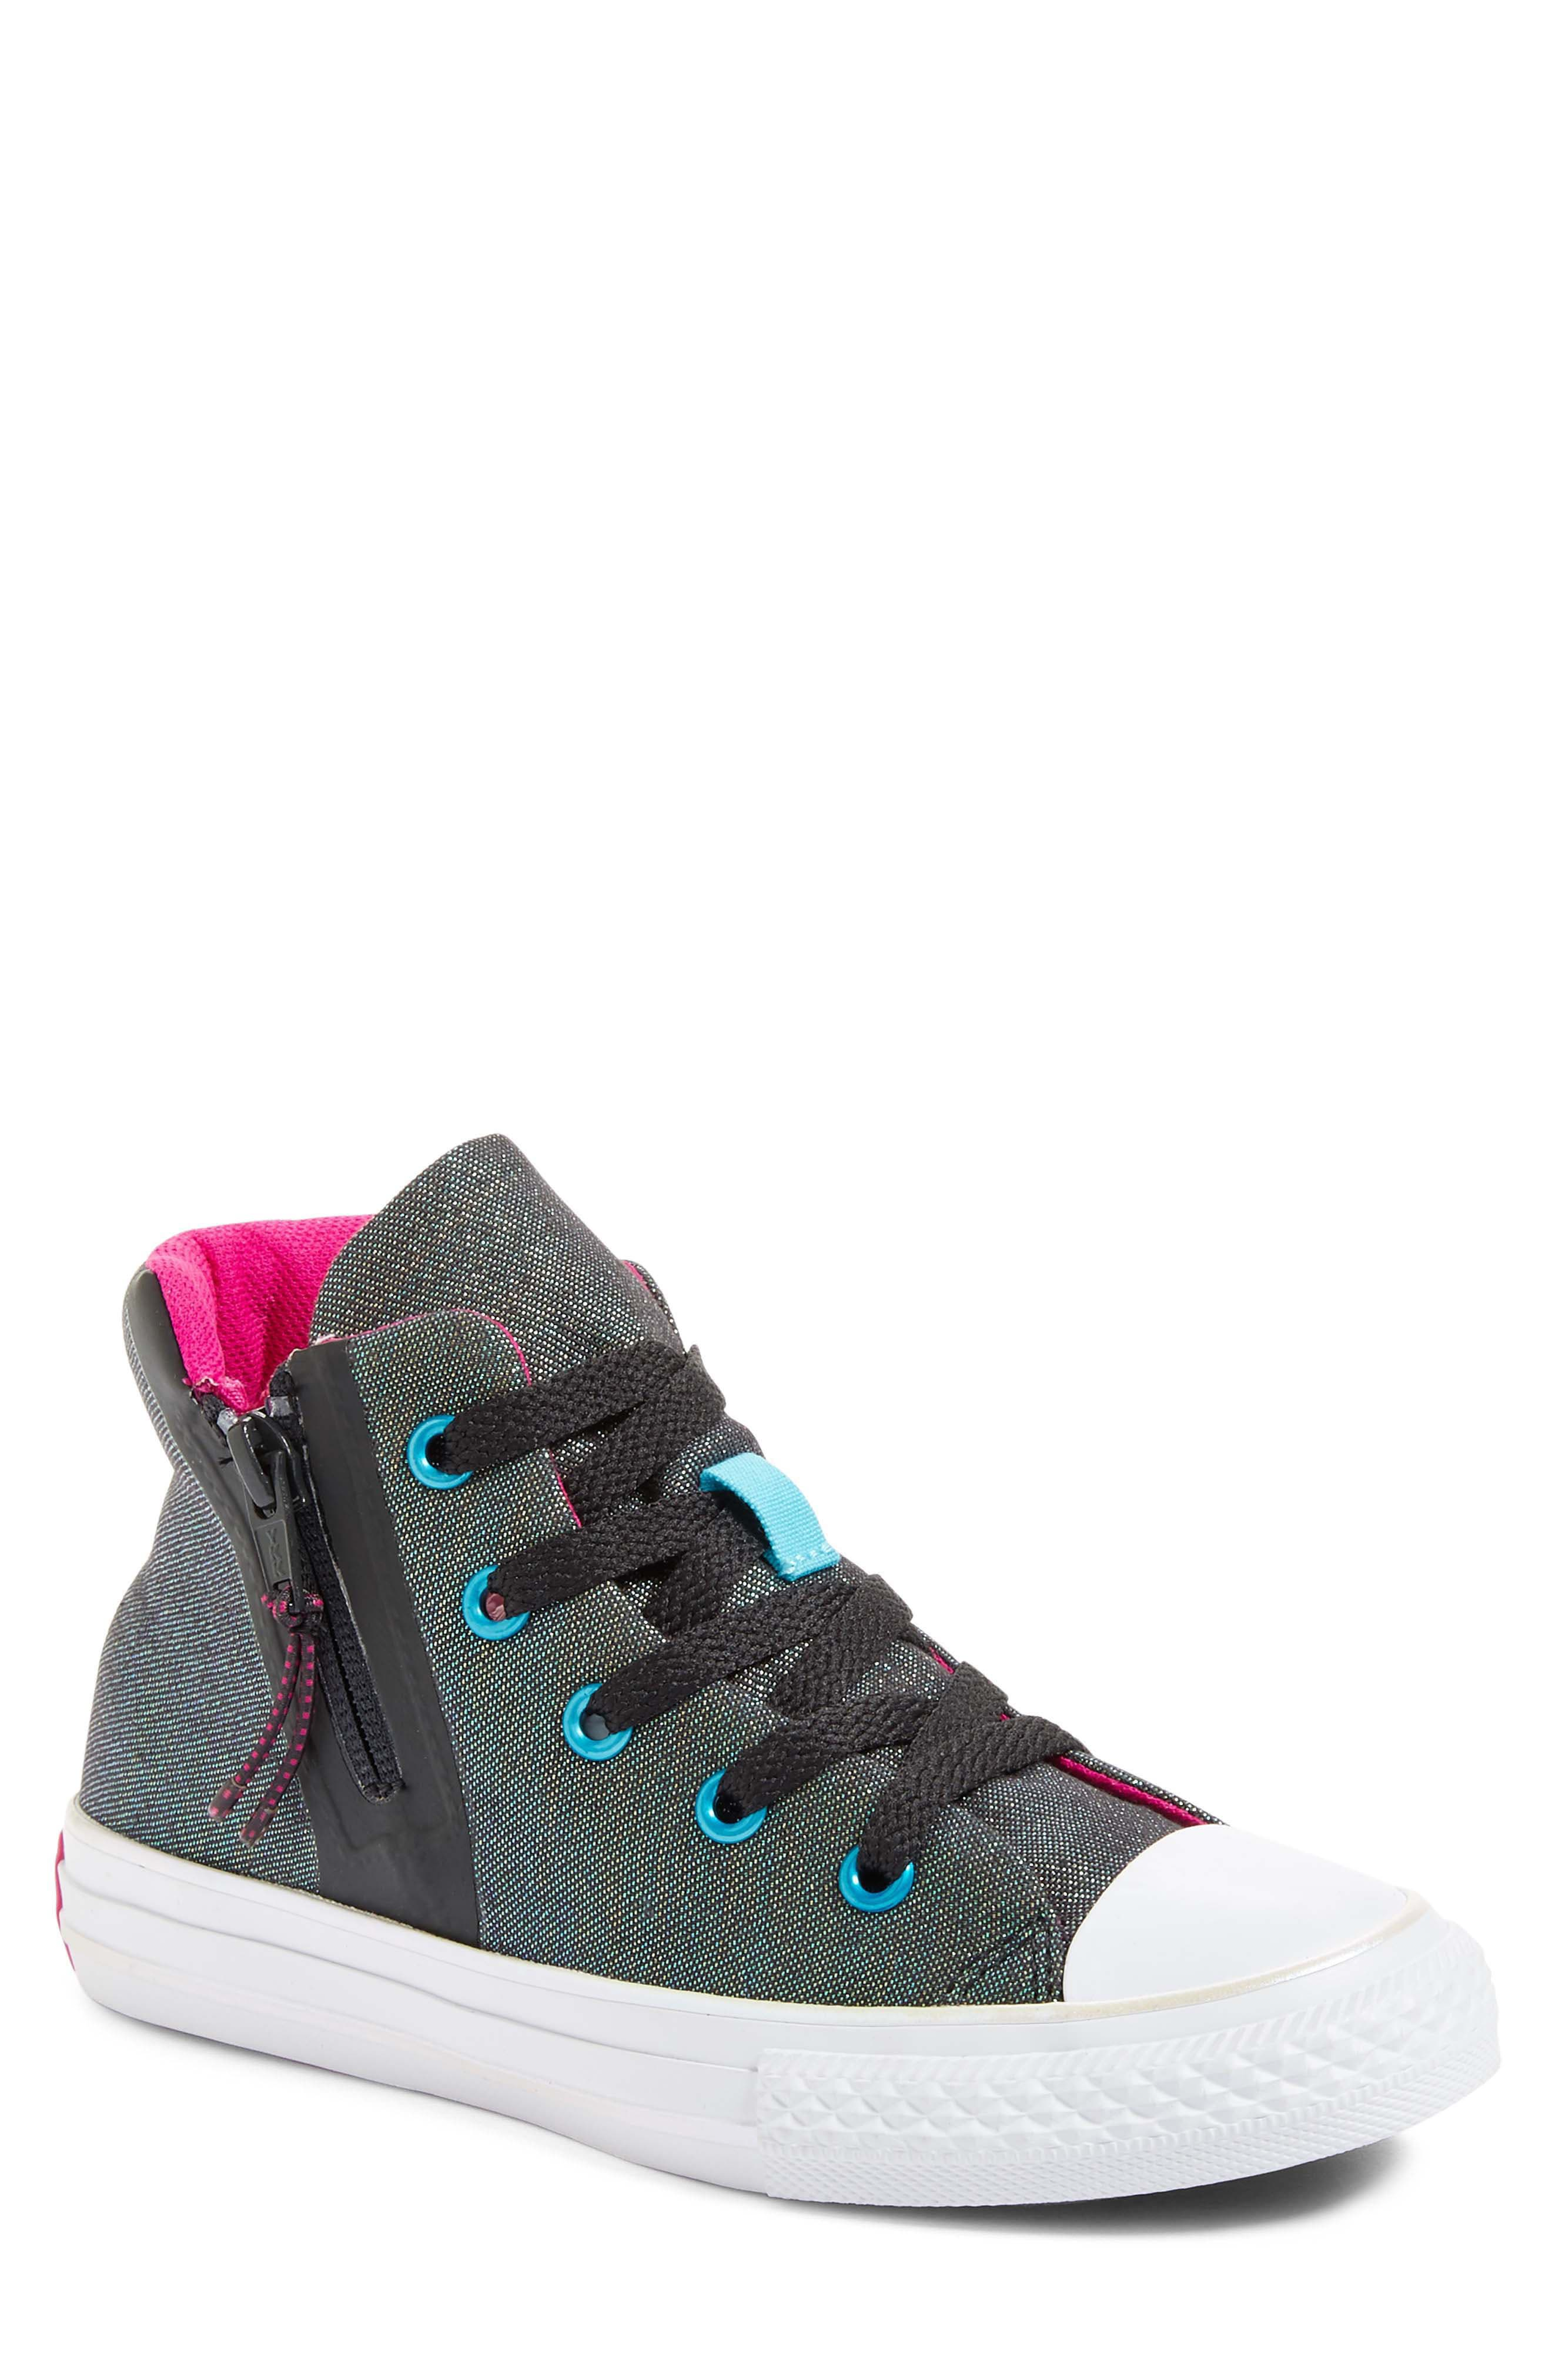 Converse Chuck Taylor® All Star® Shine High Top Sneaker (Baby, Walker, Toddler, Little Kid & Big Kid)